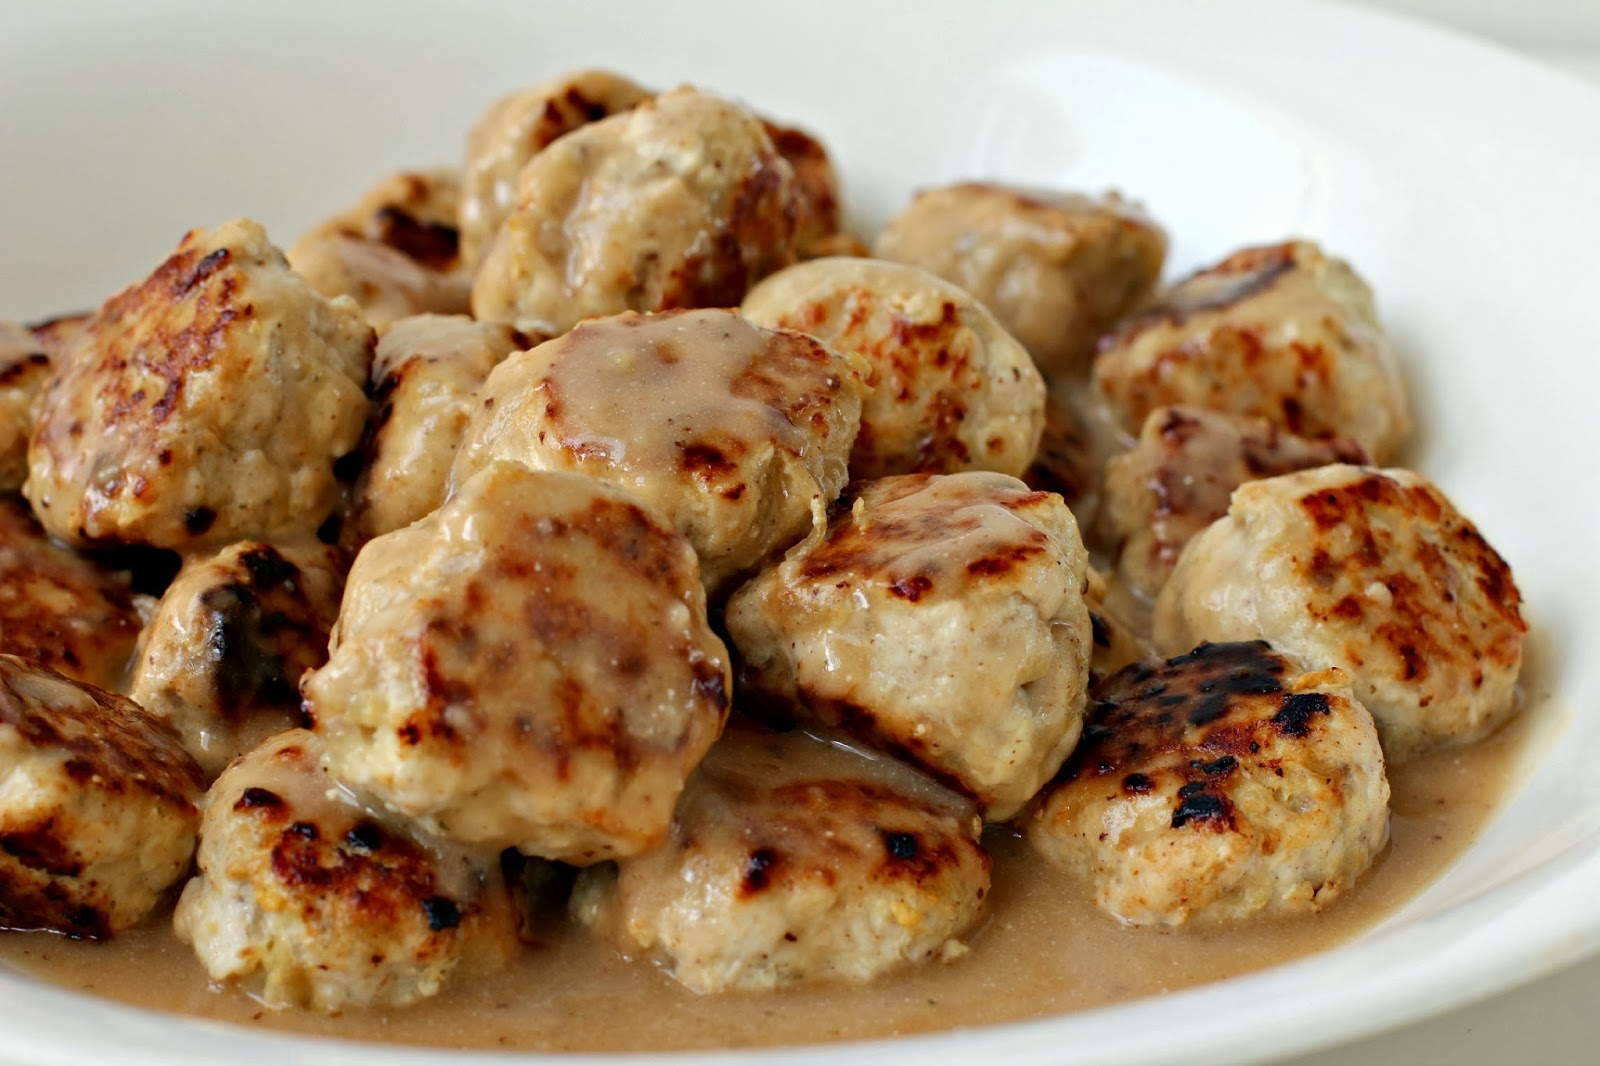 Milk and Honey: Skinnier Swedish Meatballs